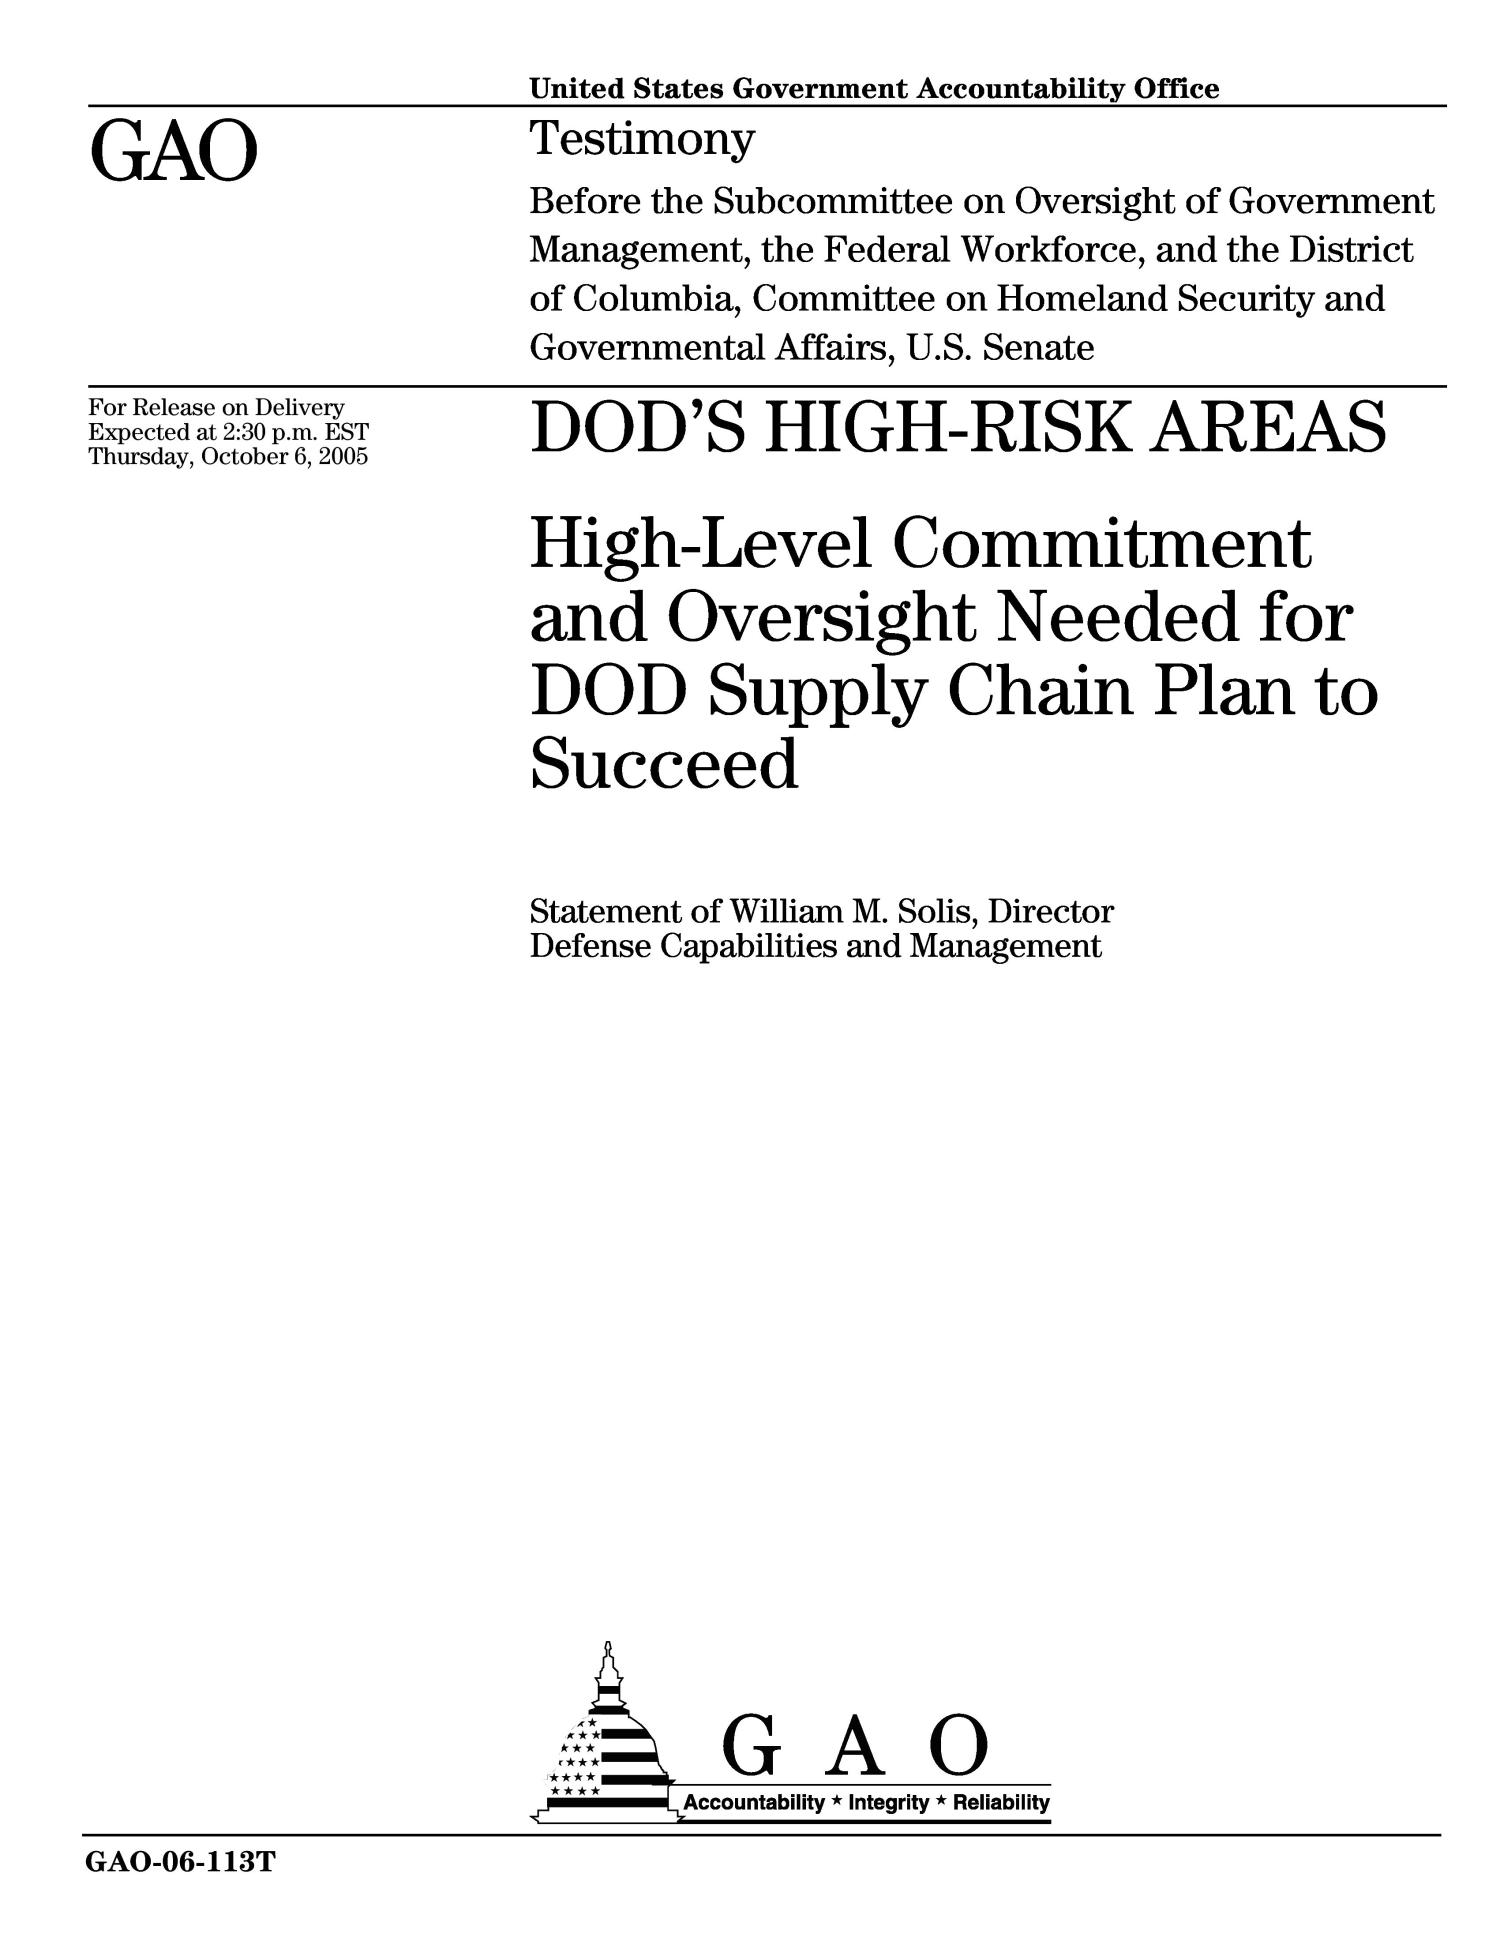 DOD's High-Risk Areas: High-Level Commitment and Oversight Needed for DOD Supply Chain Plan to Succeed                                                                                                      [Sequence #]: 1 of 15